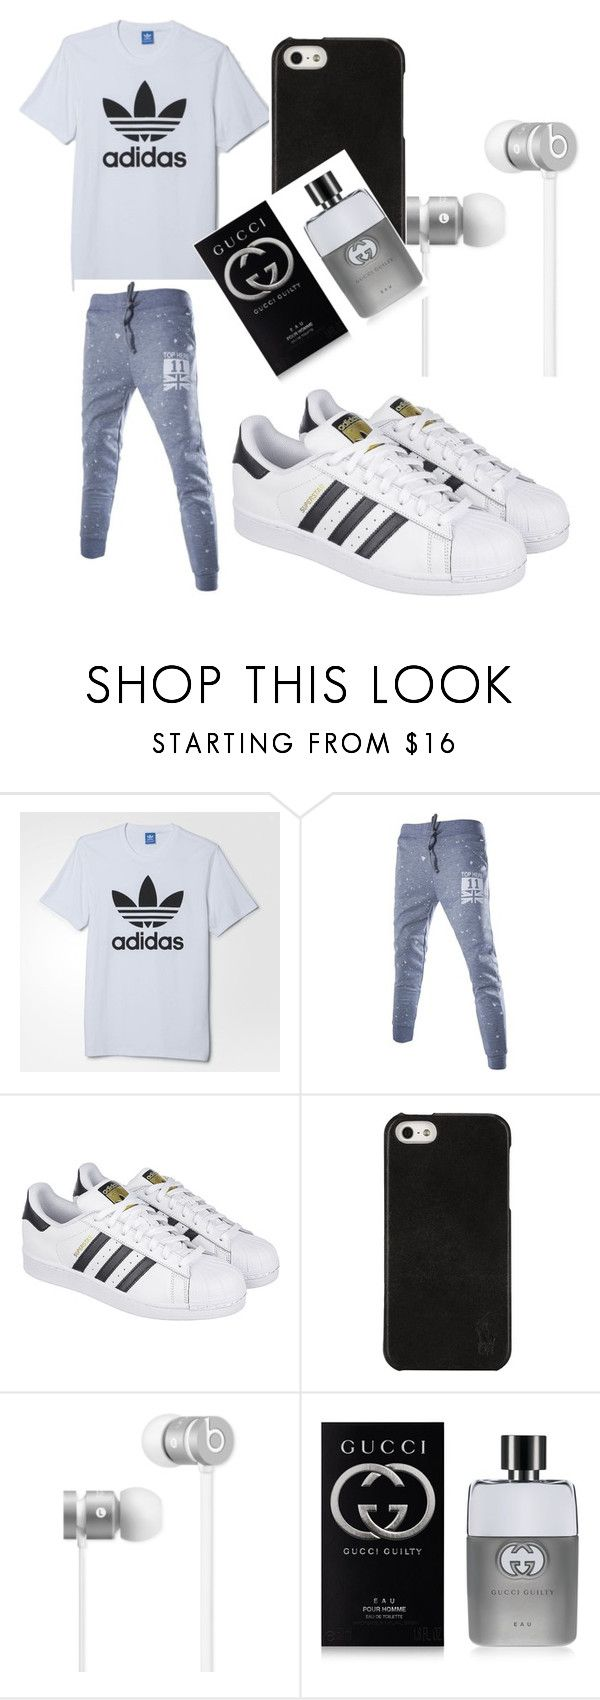 """Untitled #6"" by shaniya20052005 ❤ liked on Polyvore featuring adidas, Polo Ralph Lauren, Beats by Dr. Dre, Gucci, men's fashion and menswear"